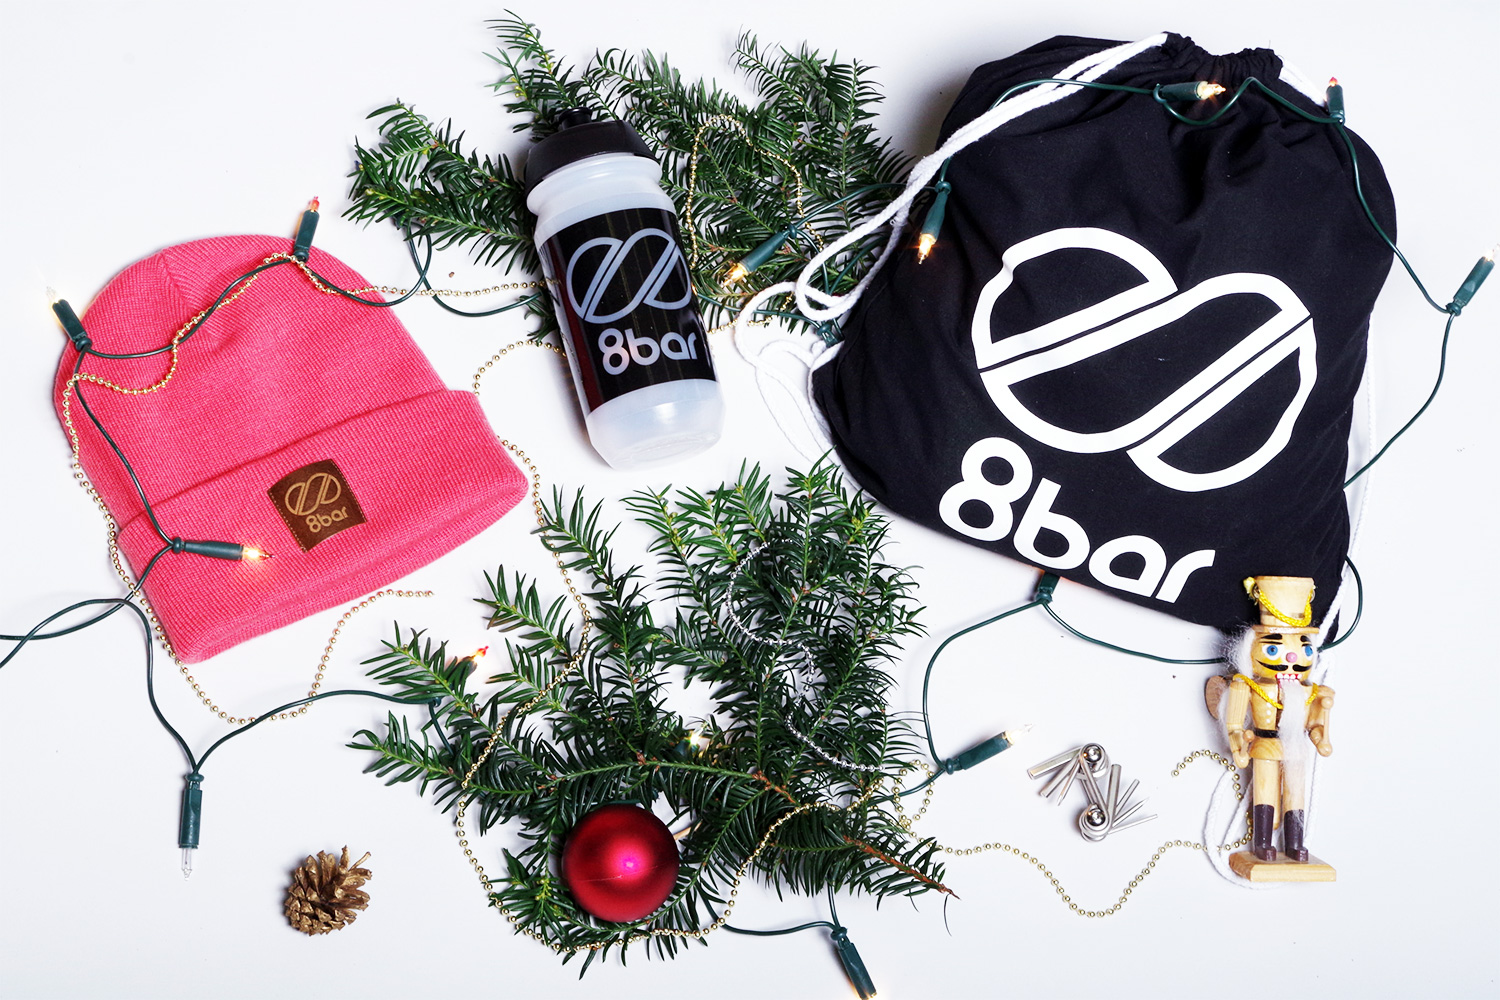 8bar-christmas-package-2016_1500px